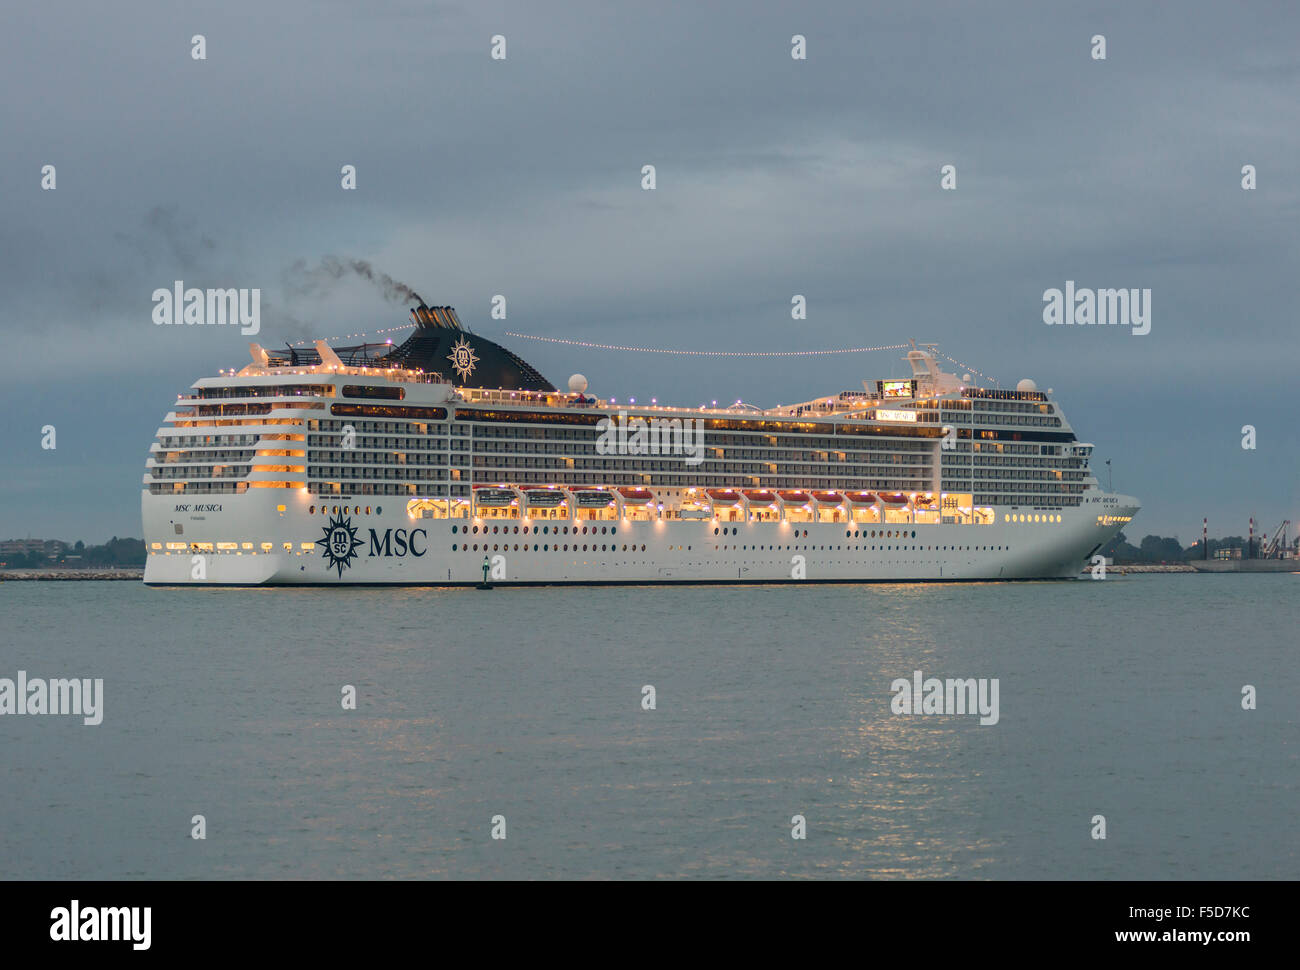 Cruise ship MSC MUSICA, morning light, Venetian Lagoon, Veneto, Italy Stock Photo